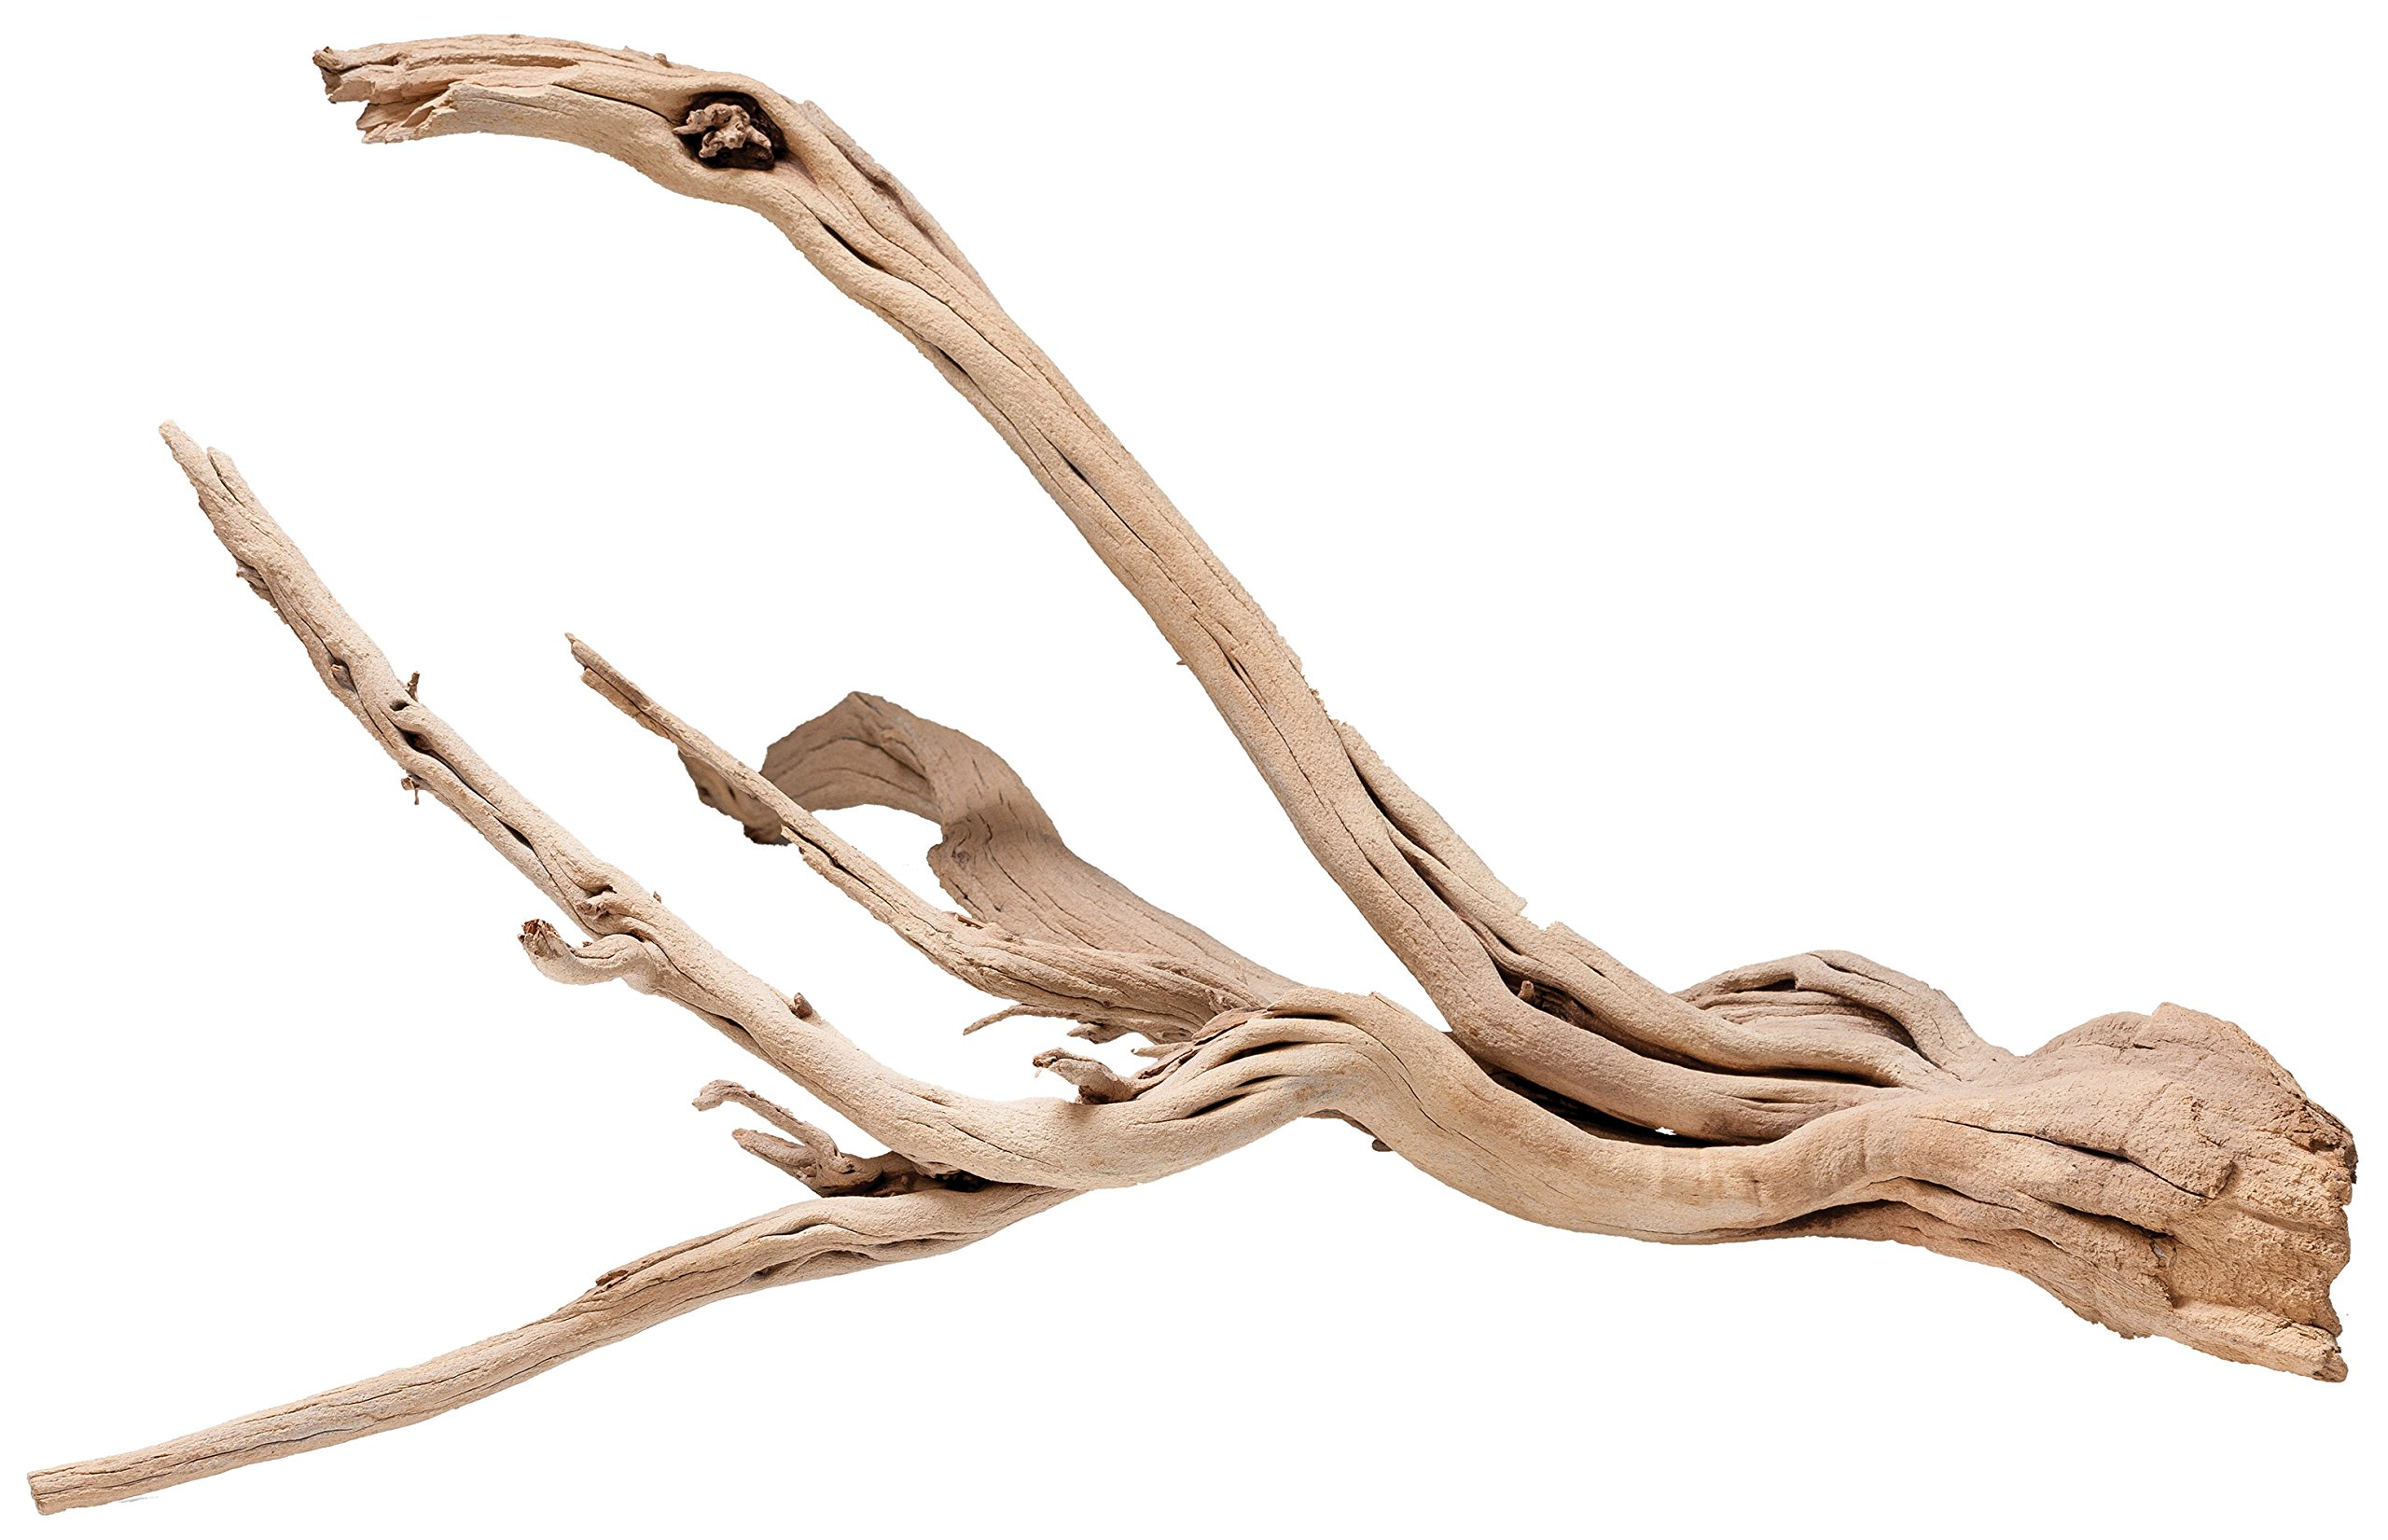 Pisces AM-GHOST024 24'' Ghost Wood Sandblasted Branchy, Null by Pisces